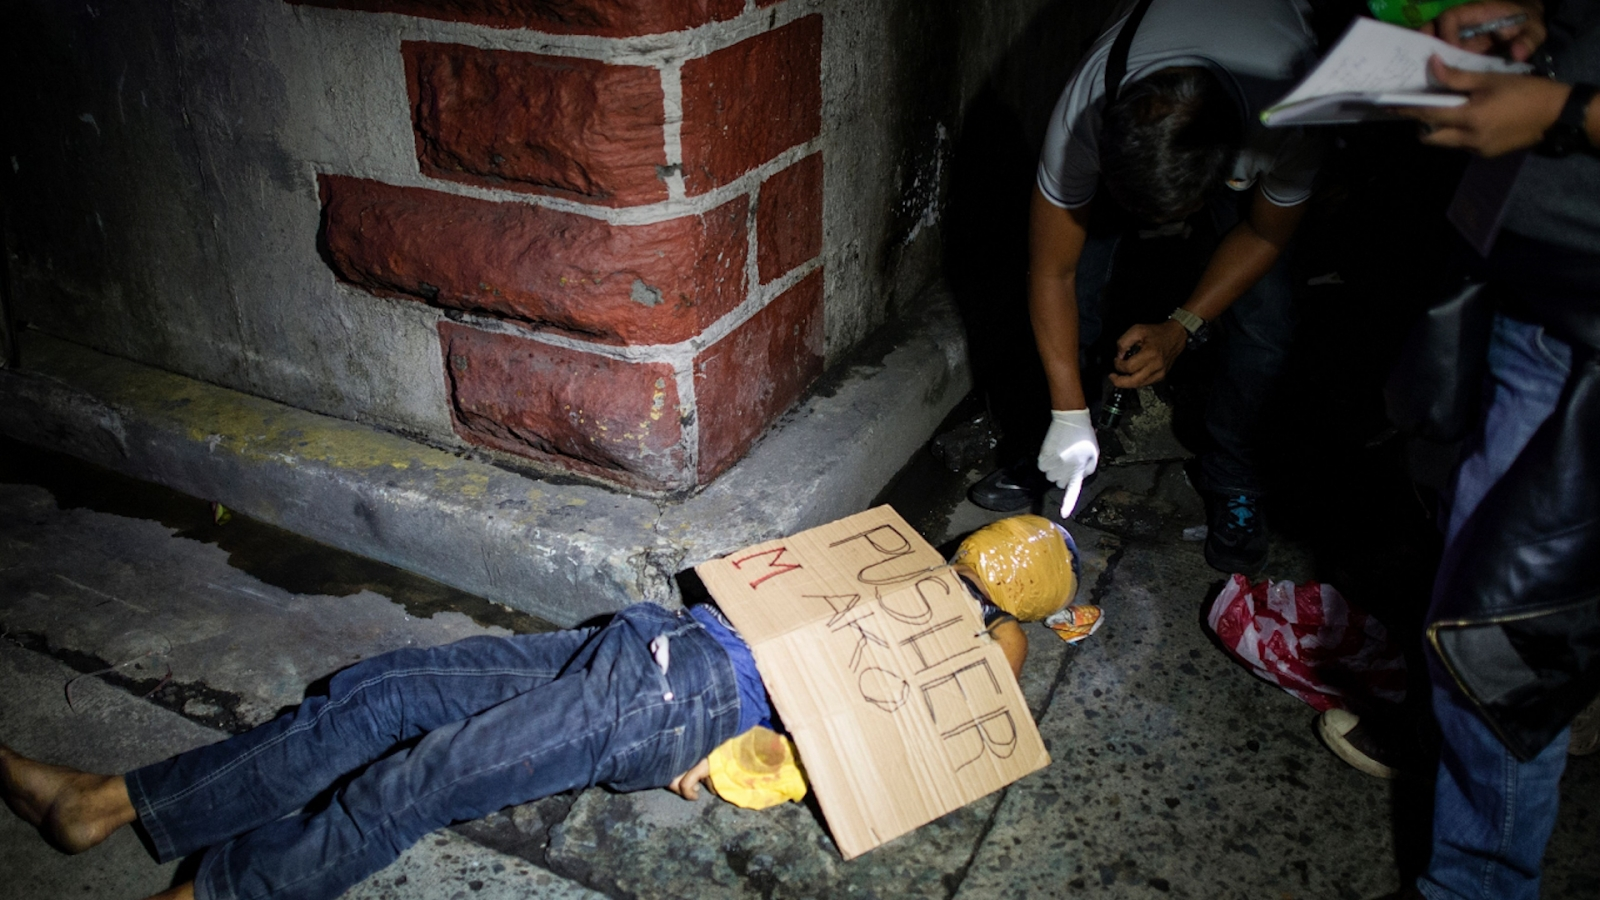 Philippines crackdown on drugs